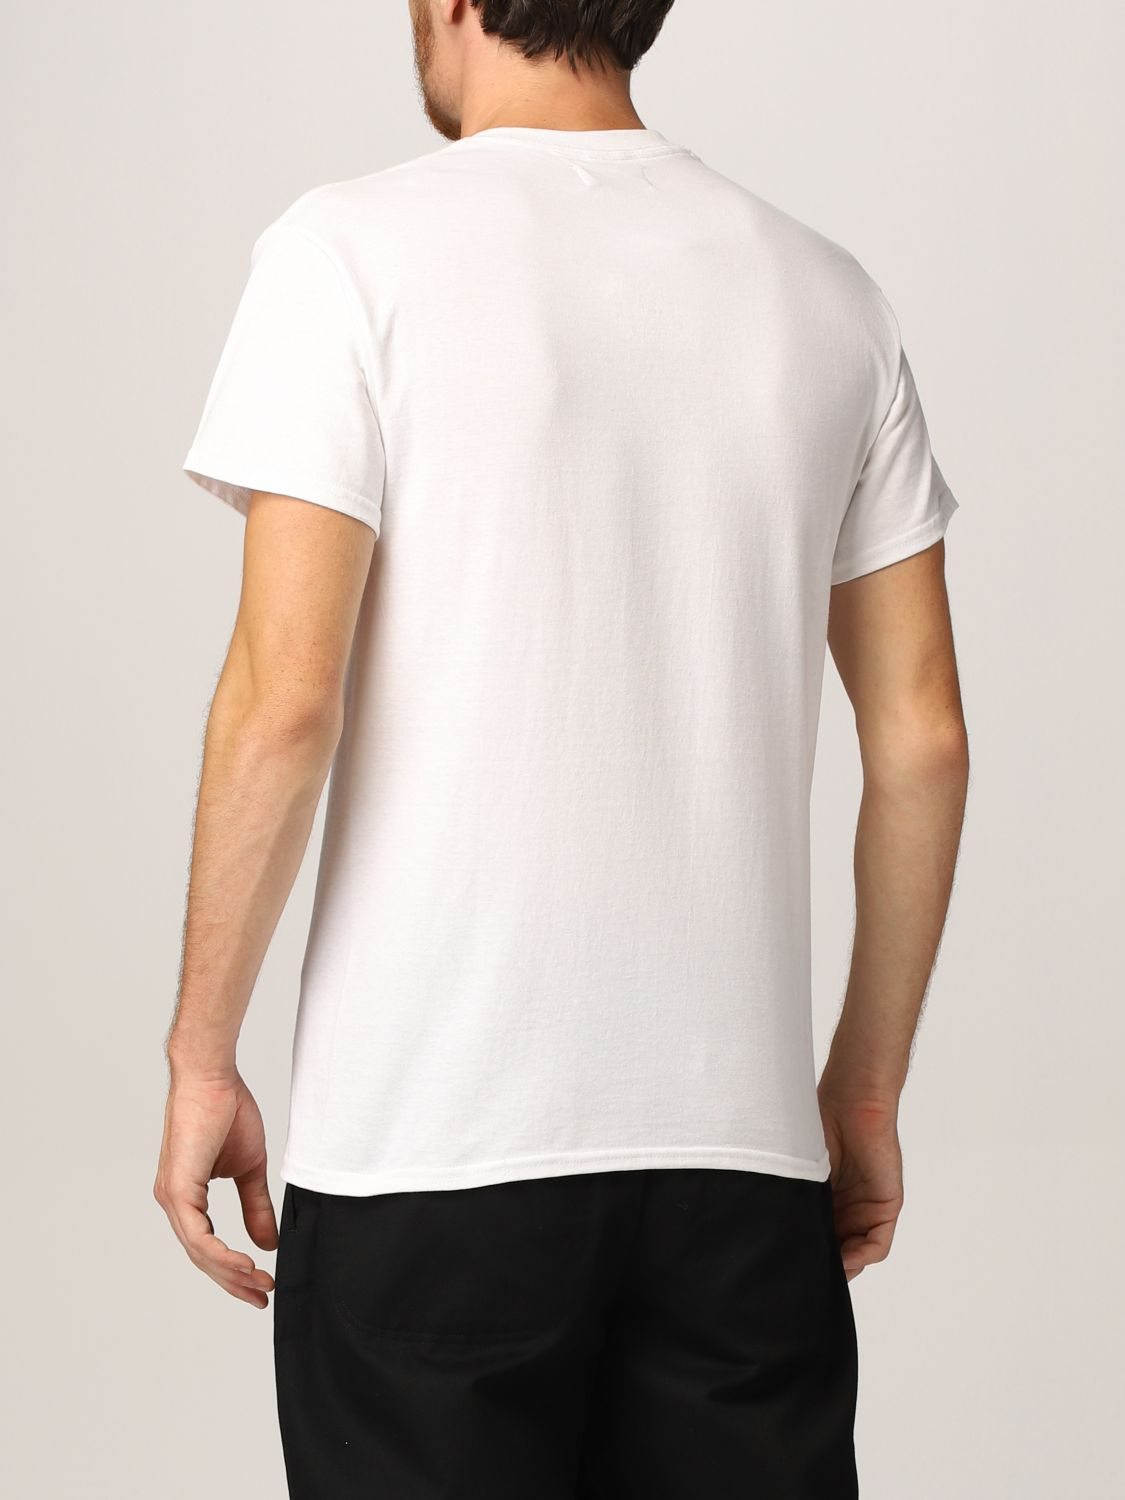 Camiseta Silted: Camiseta hombre Silted blanco 3